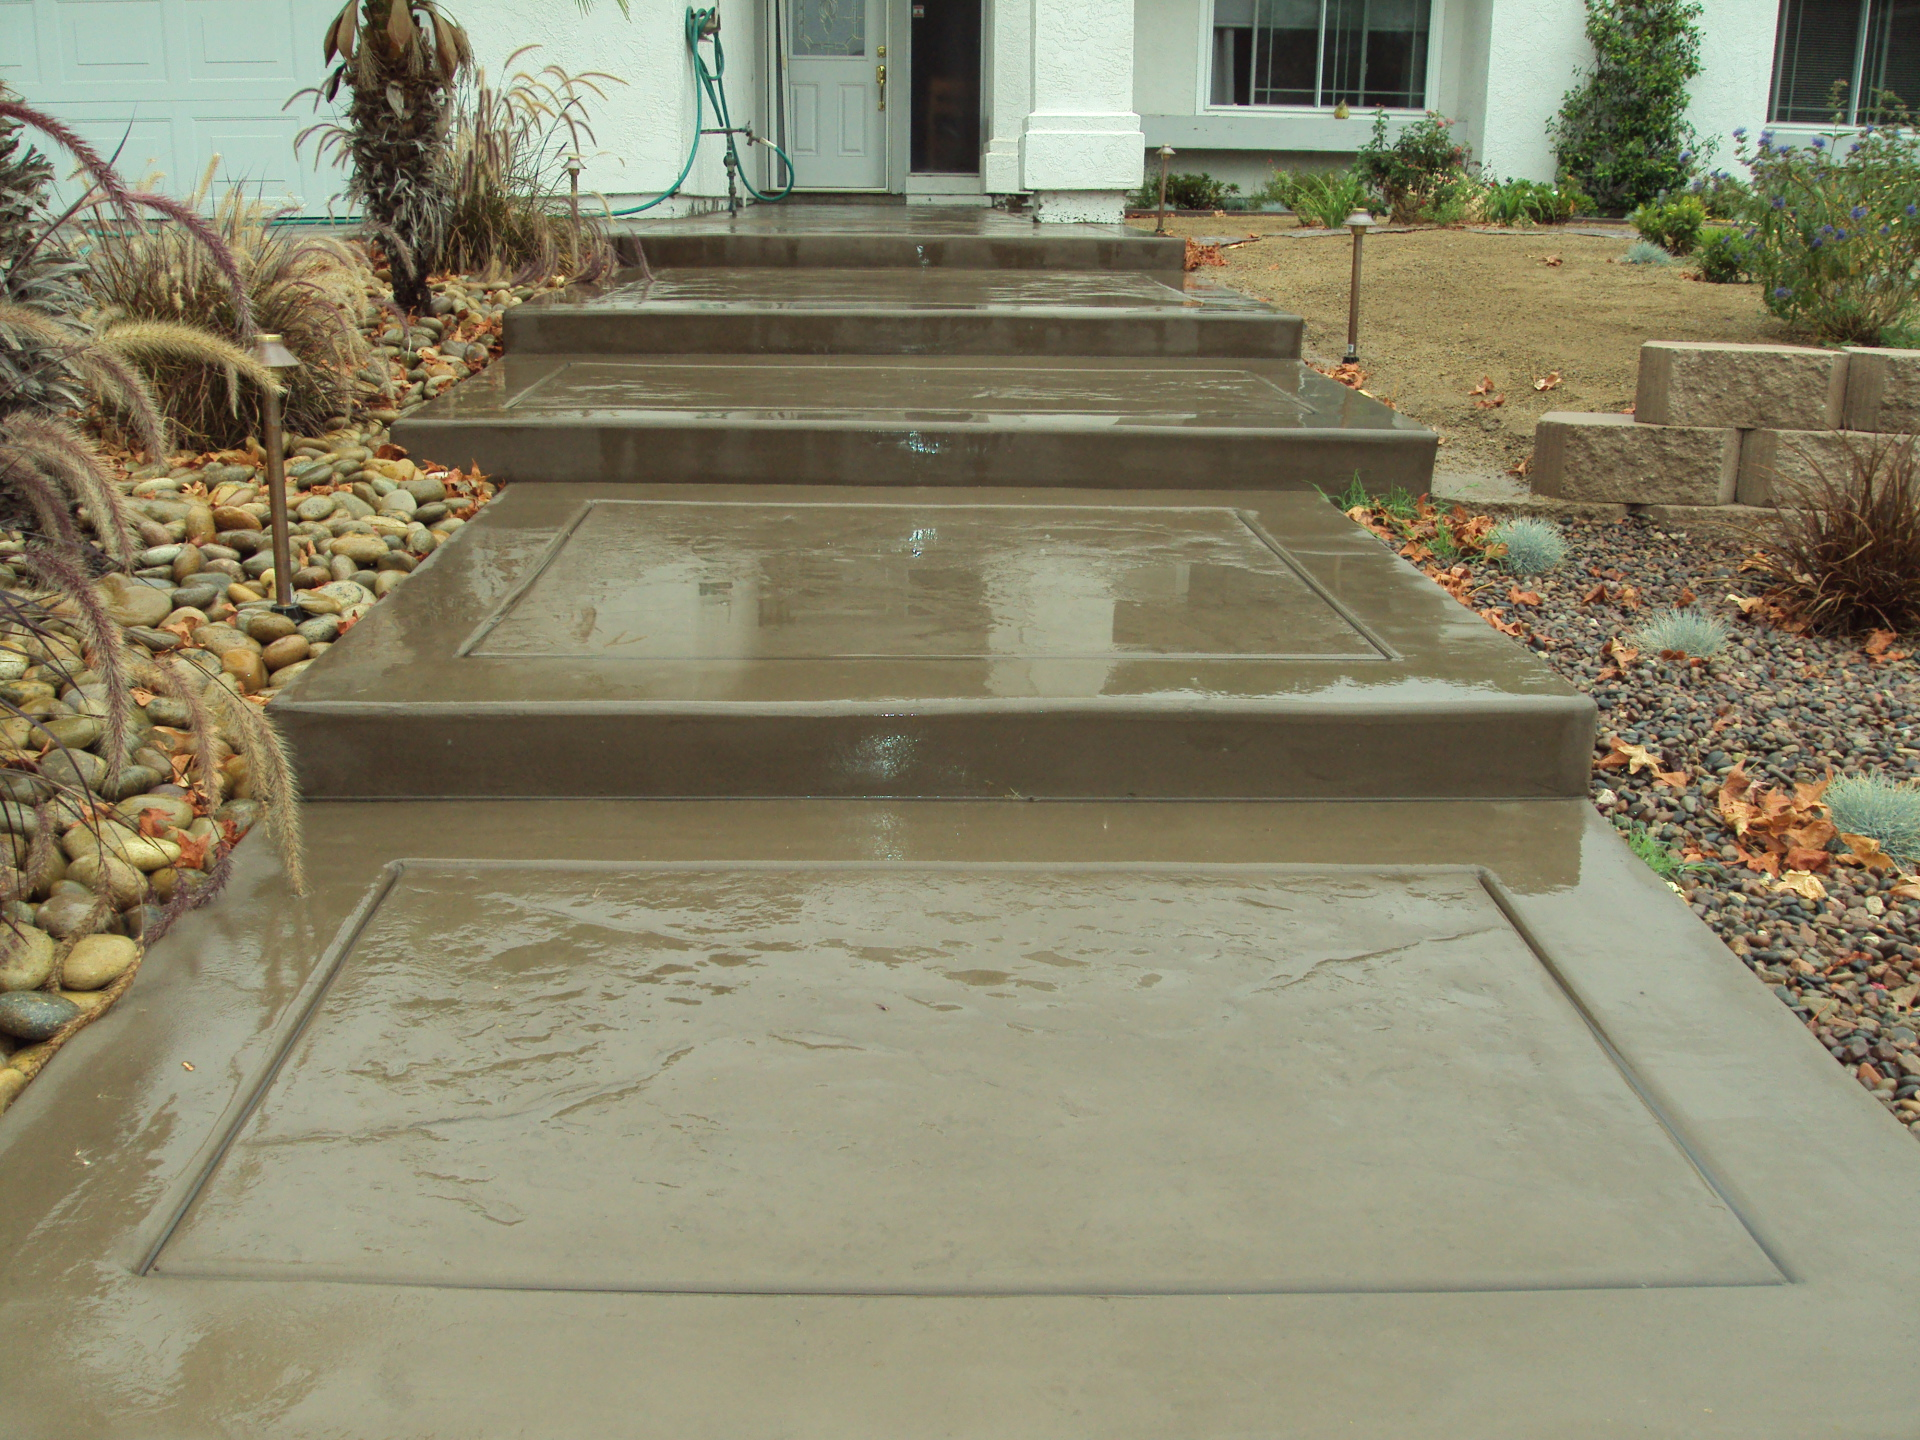 Drought tolerant landscape chula vista, stamped concrete, decomposed granite walkway, custom concrete, davis colors, new driveway, Outdoor Kitchens chula vista, patio covers chula vista, aluminum patio covers, outdoor entertainment areas,